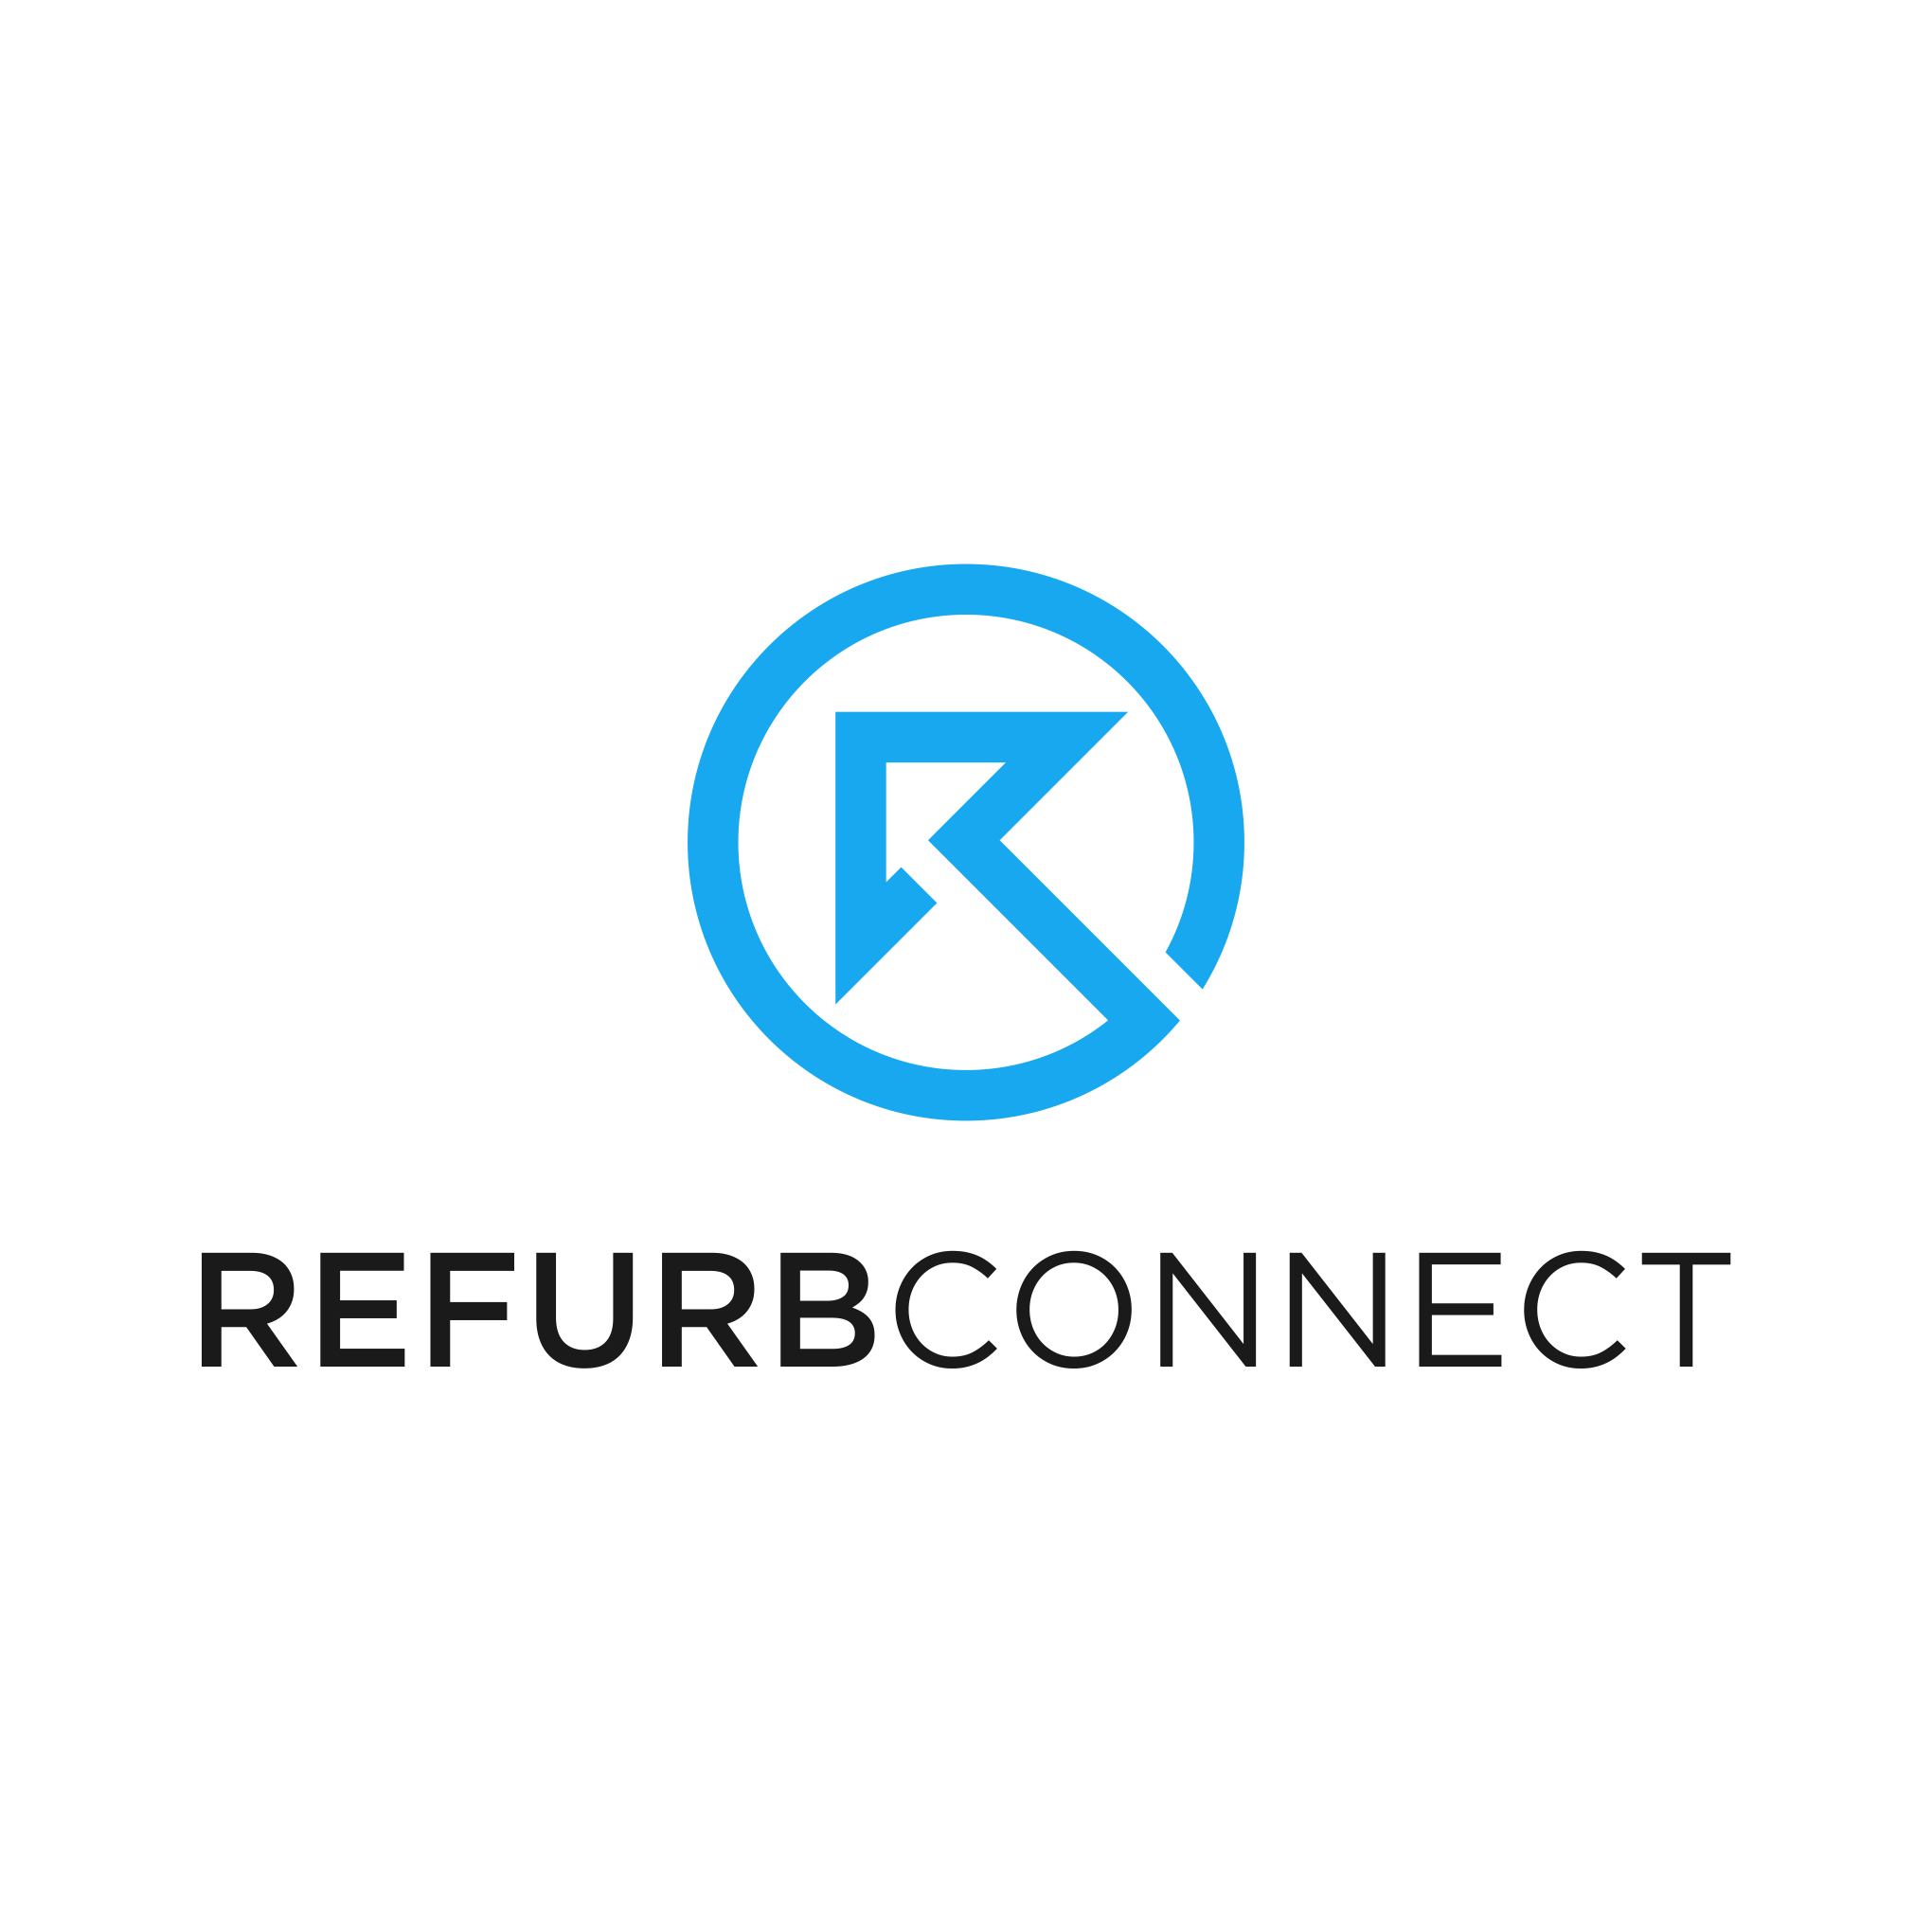 Refurb Connect